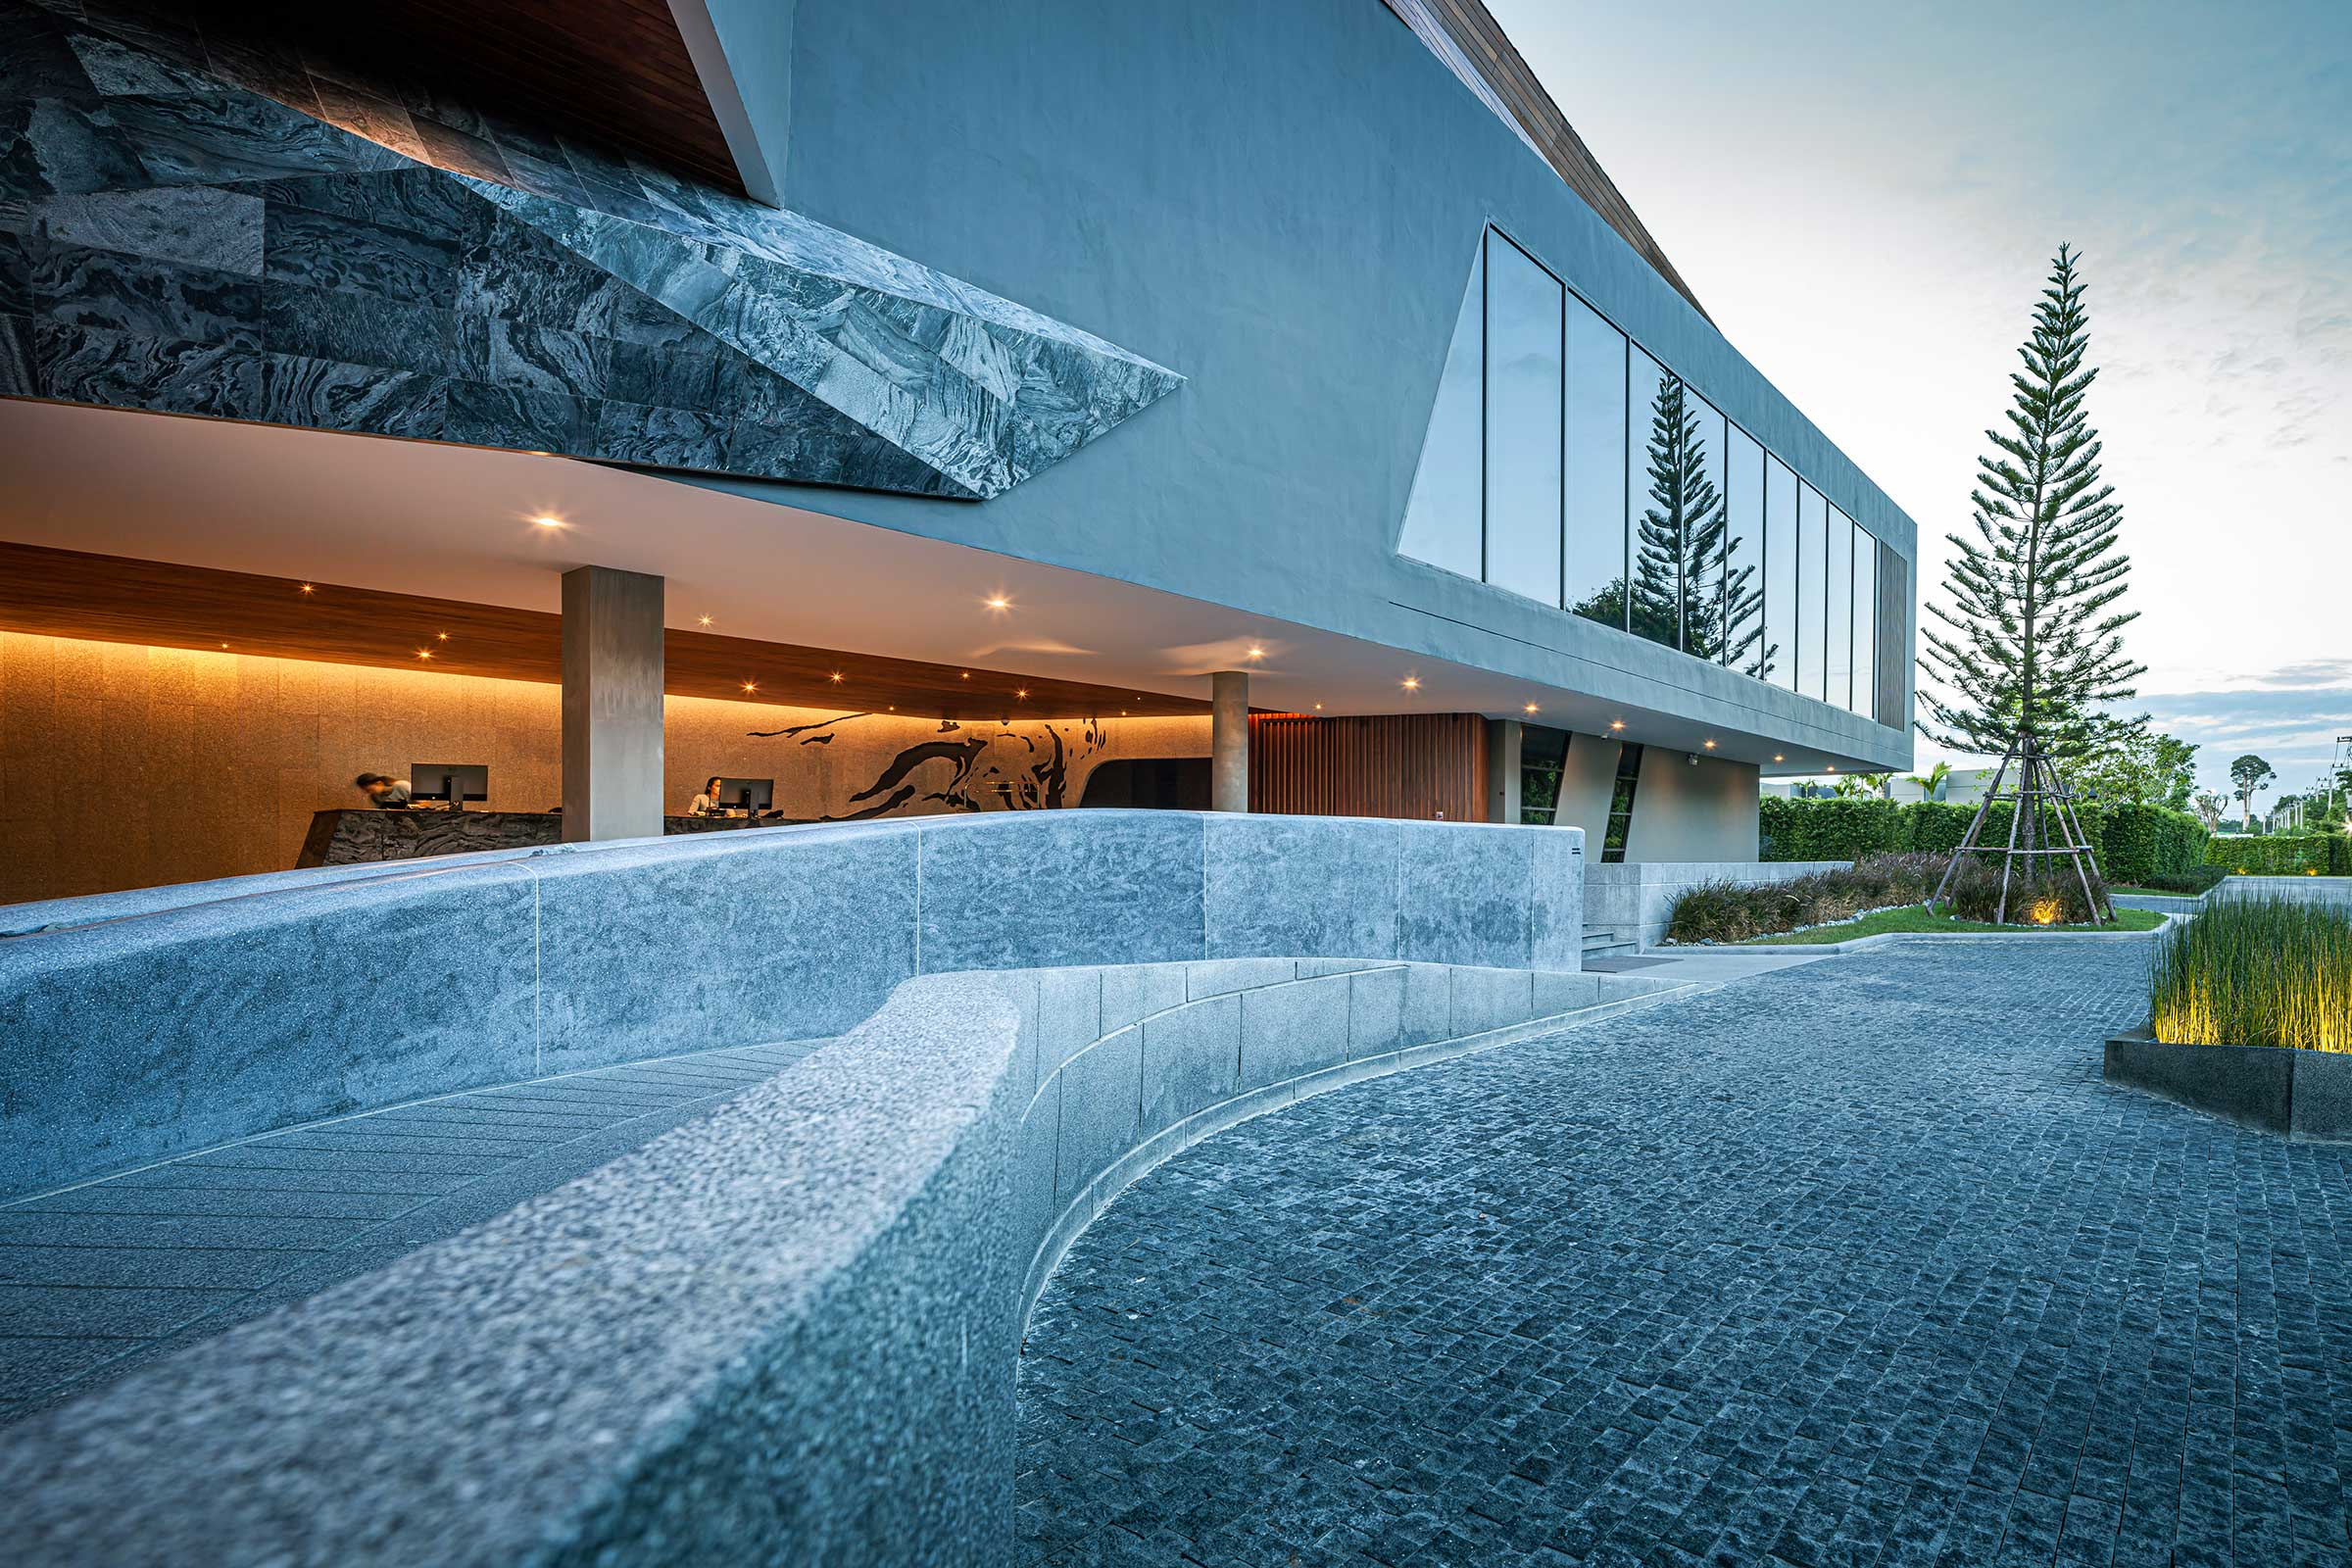 Terrazzo-sculptural-ramp-and-the-massive-function-room-above.jpg